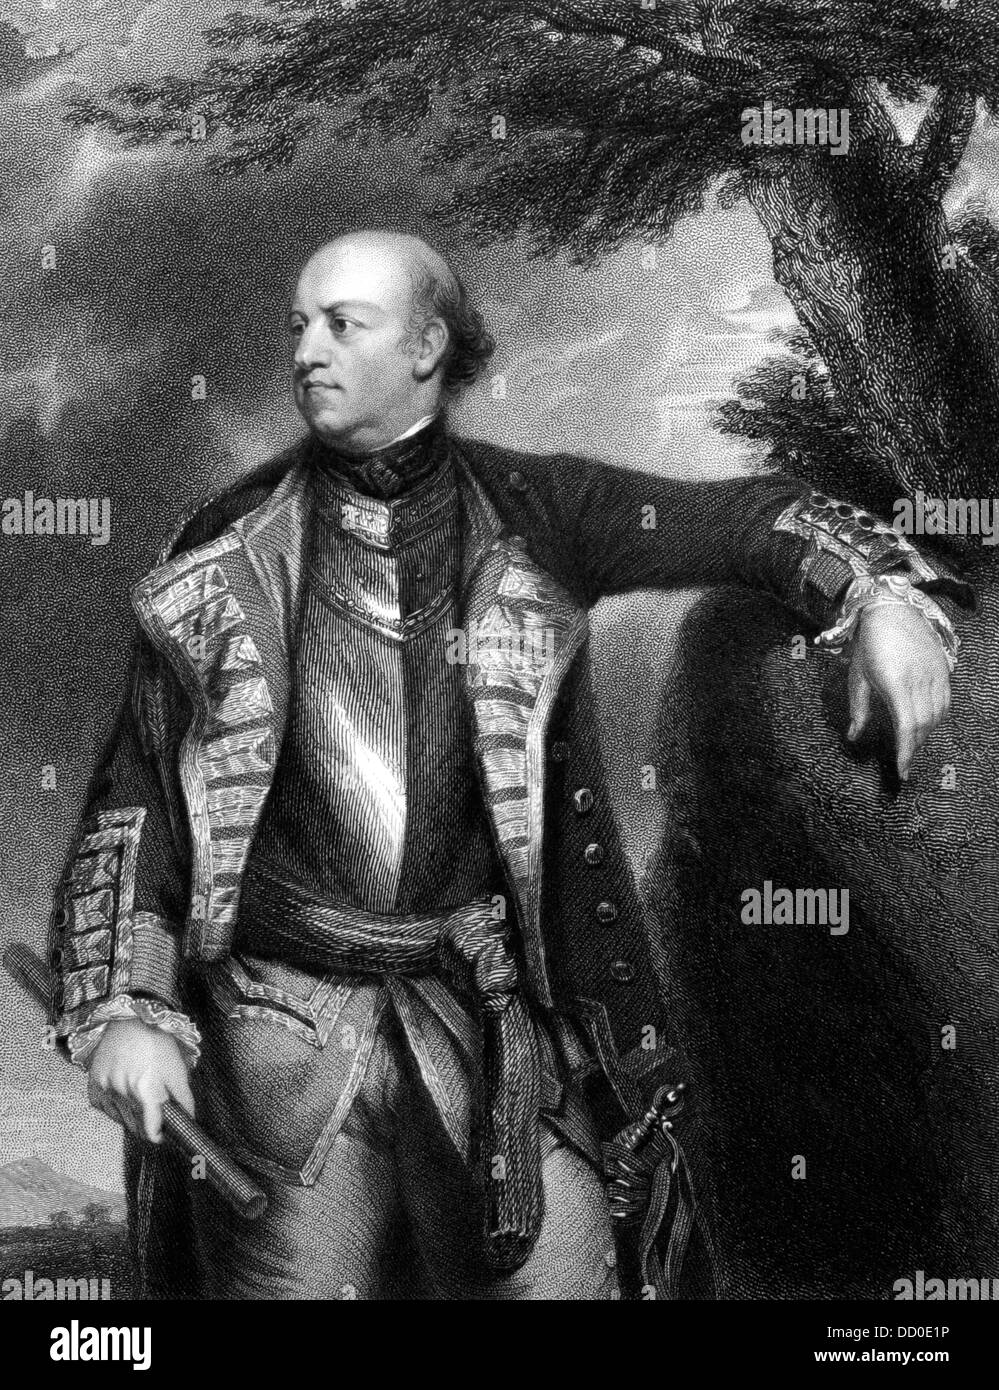 John Manners, Marquis of Granby (1721-1770) on engraving from 1832.  British soldier. Stock Photo